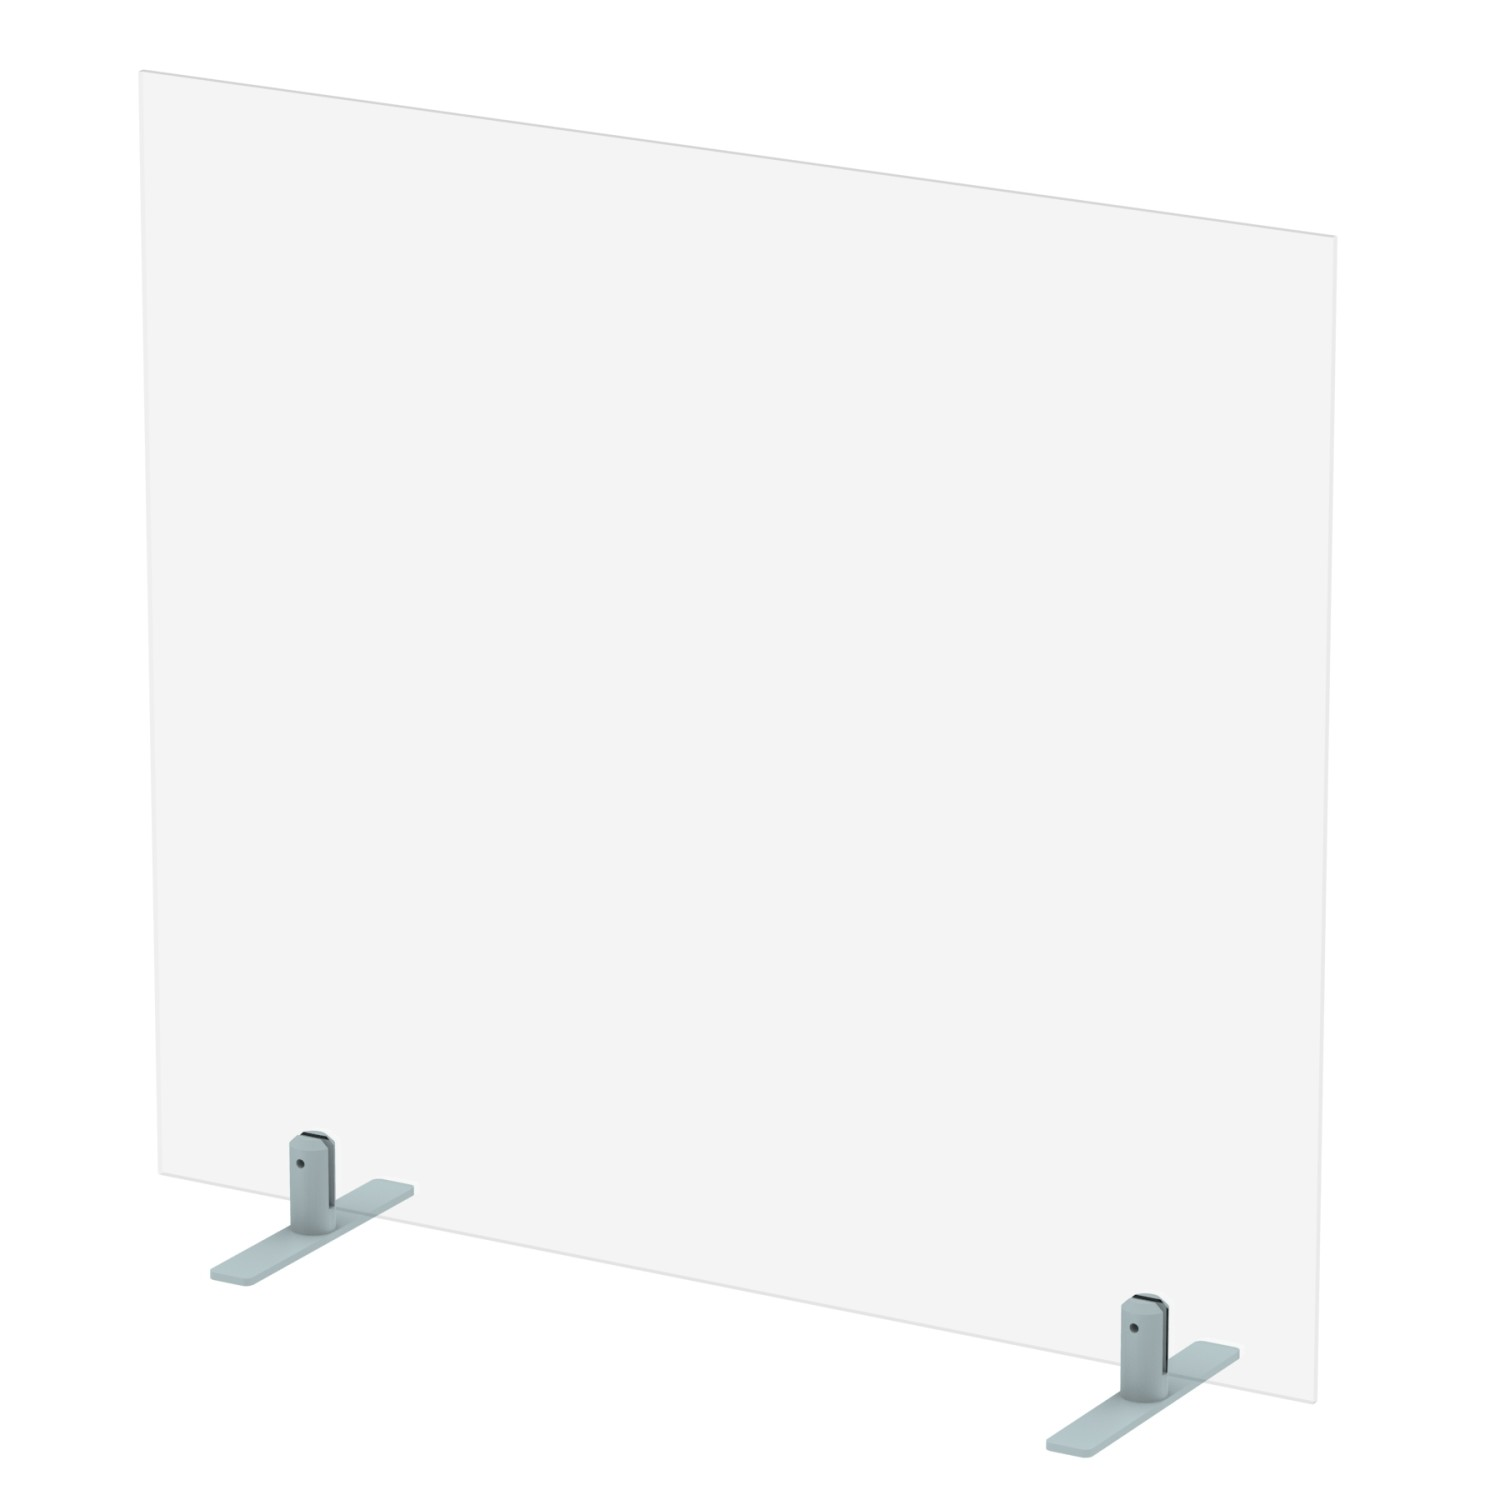 An image of Orion Freestanding Antibacterial Acrylic Desktop Screens - Screens...